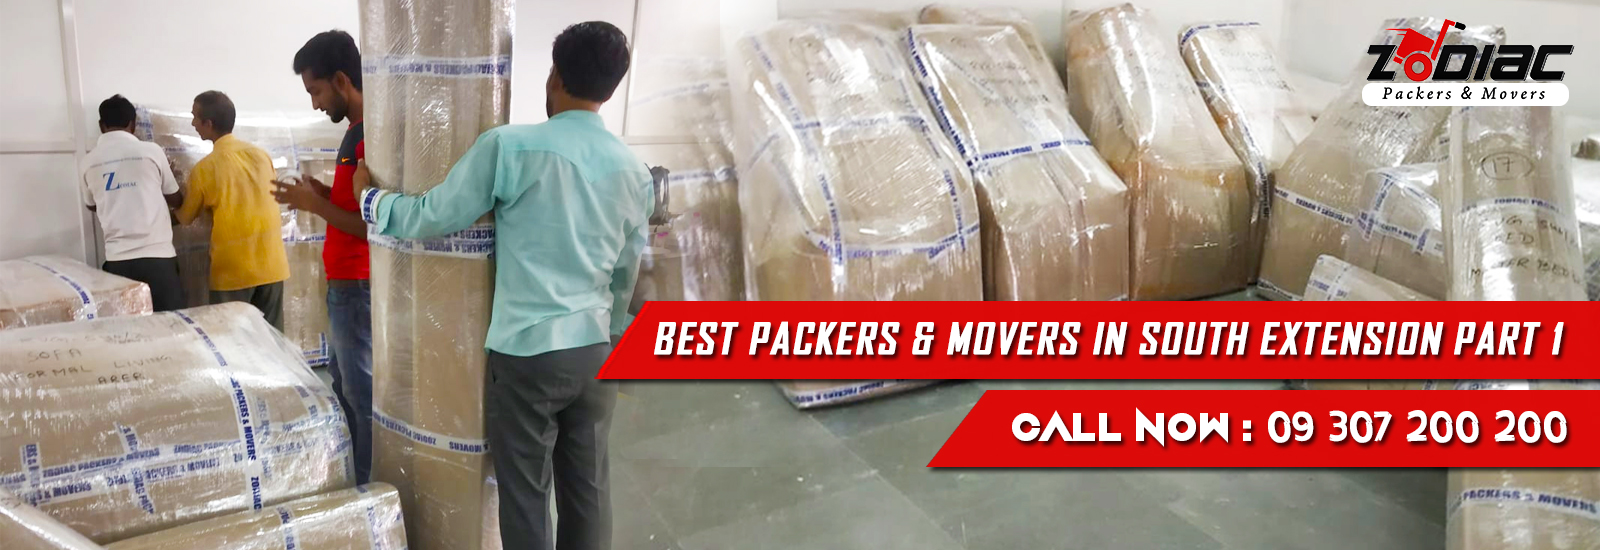 Packers and Movers in South Extension Part 1